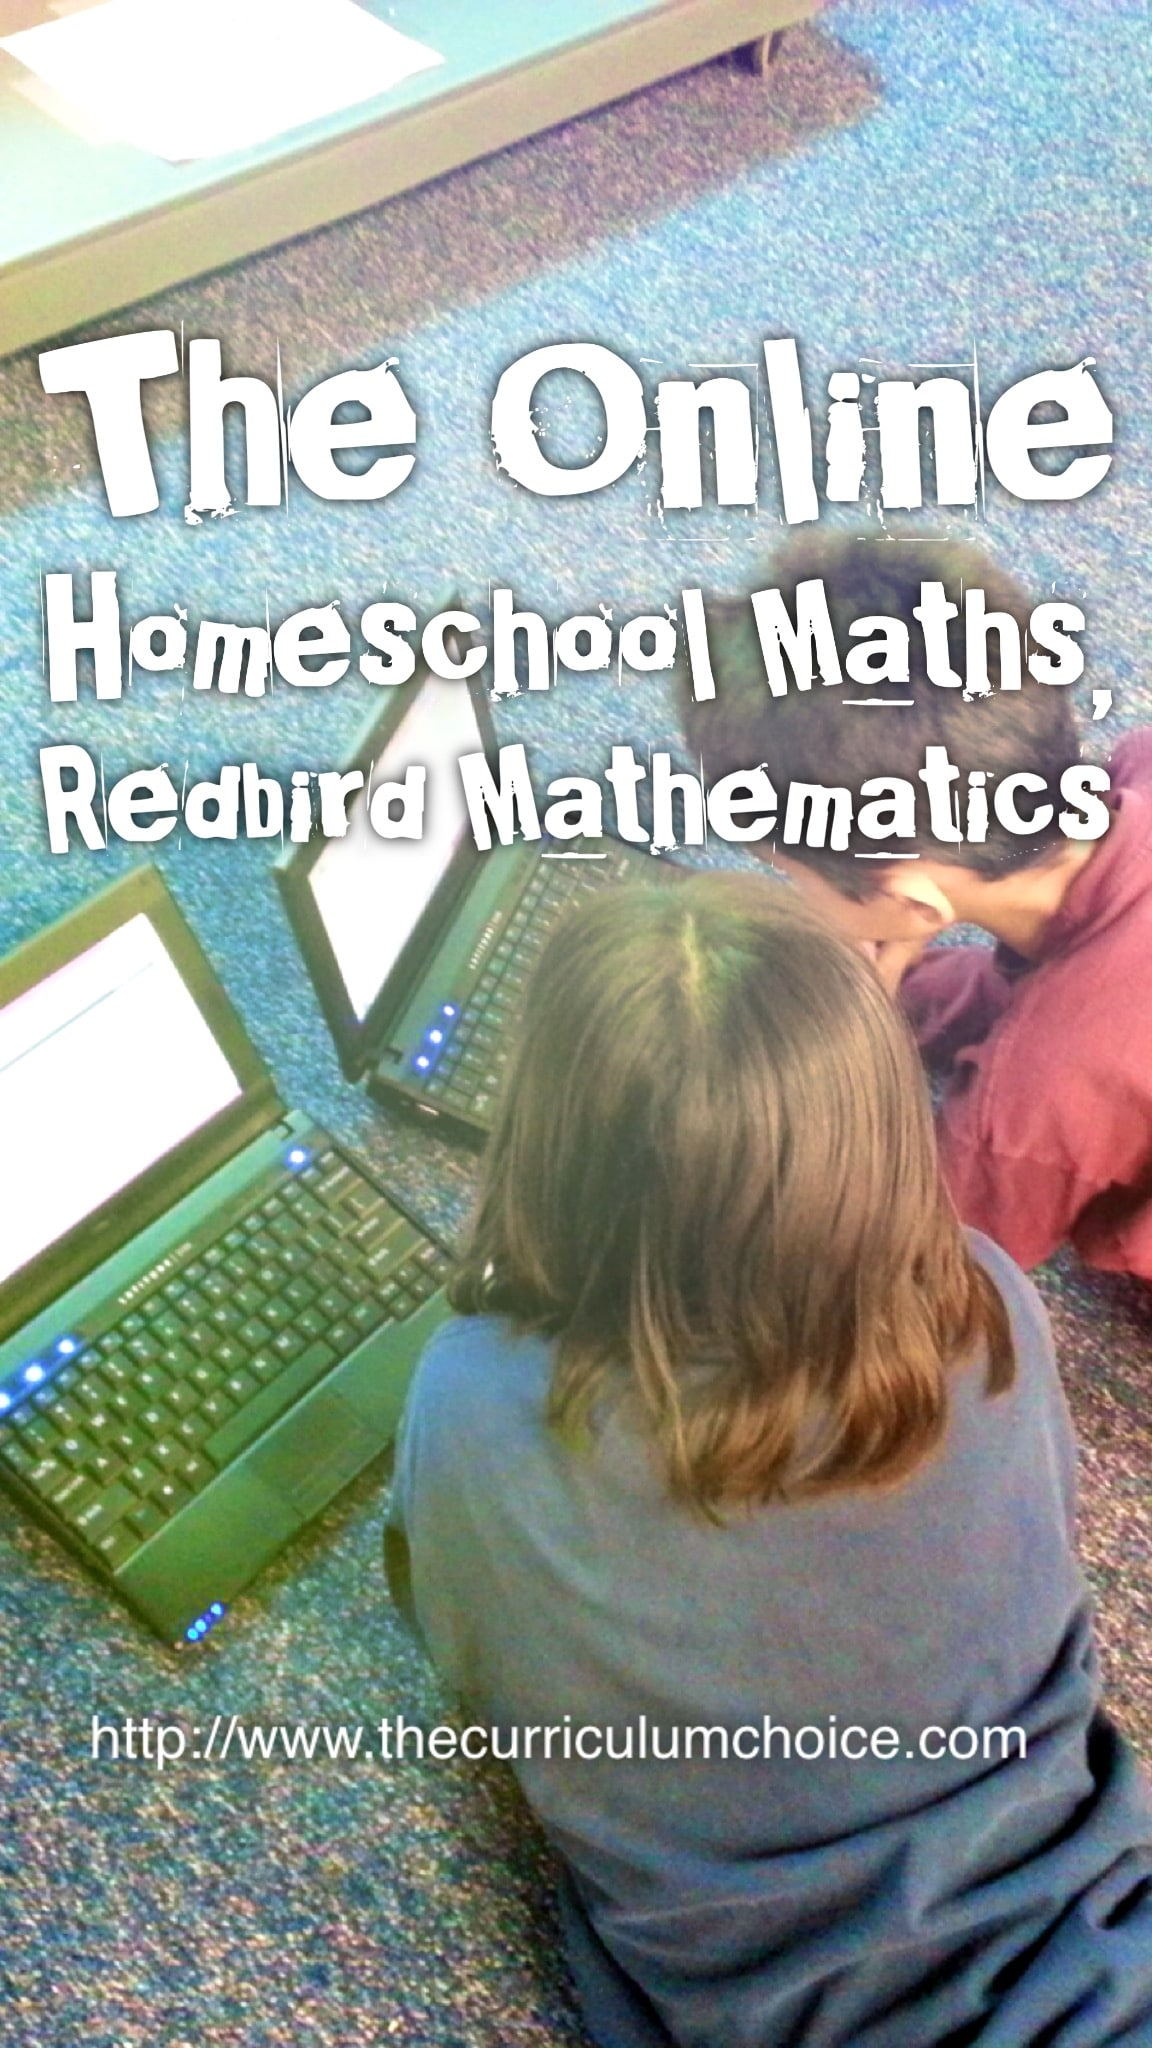 The Online Homeschool Maths, Redbird Mathematics